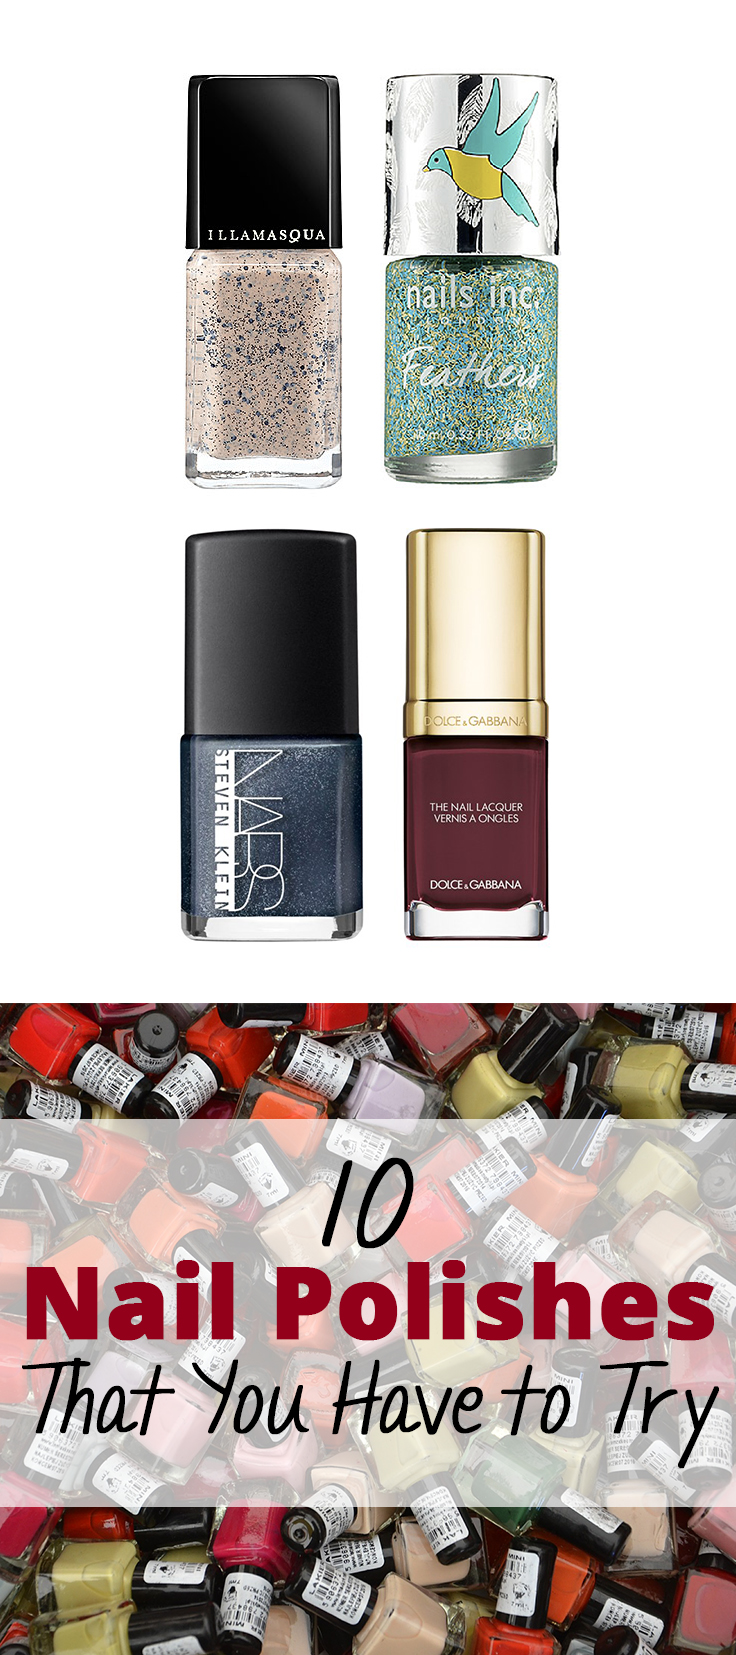 10 Nail Polishes That You Have to Try